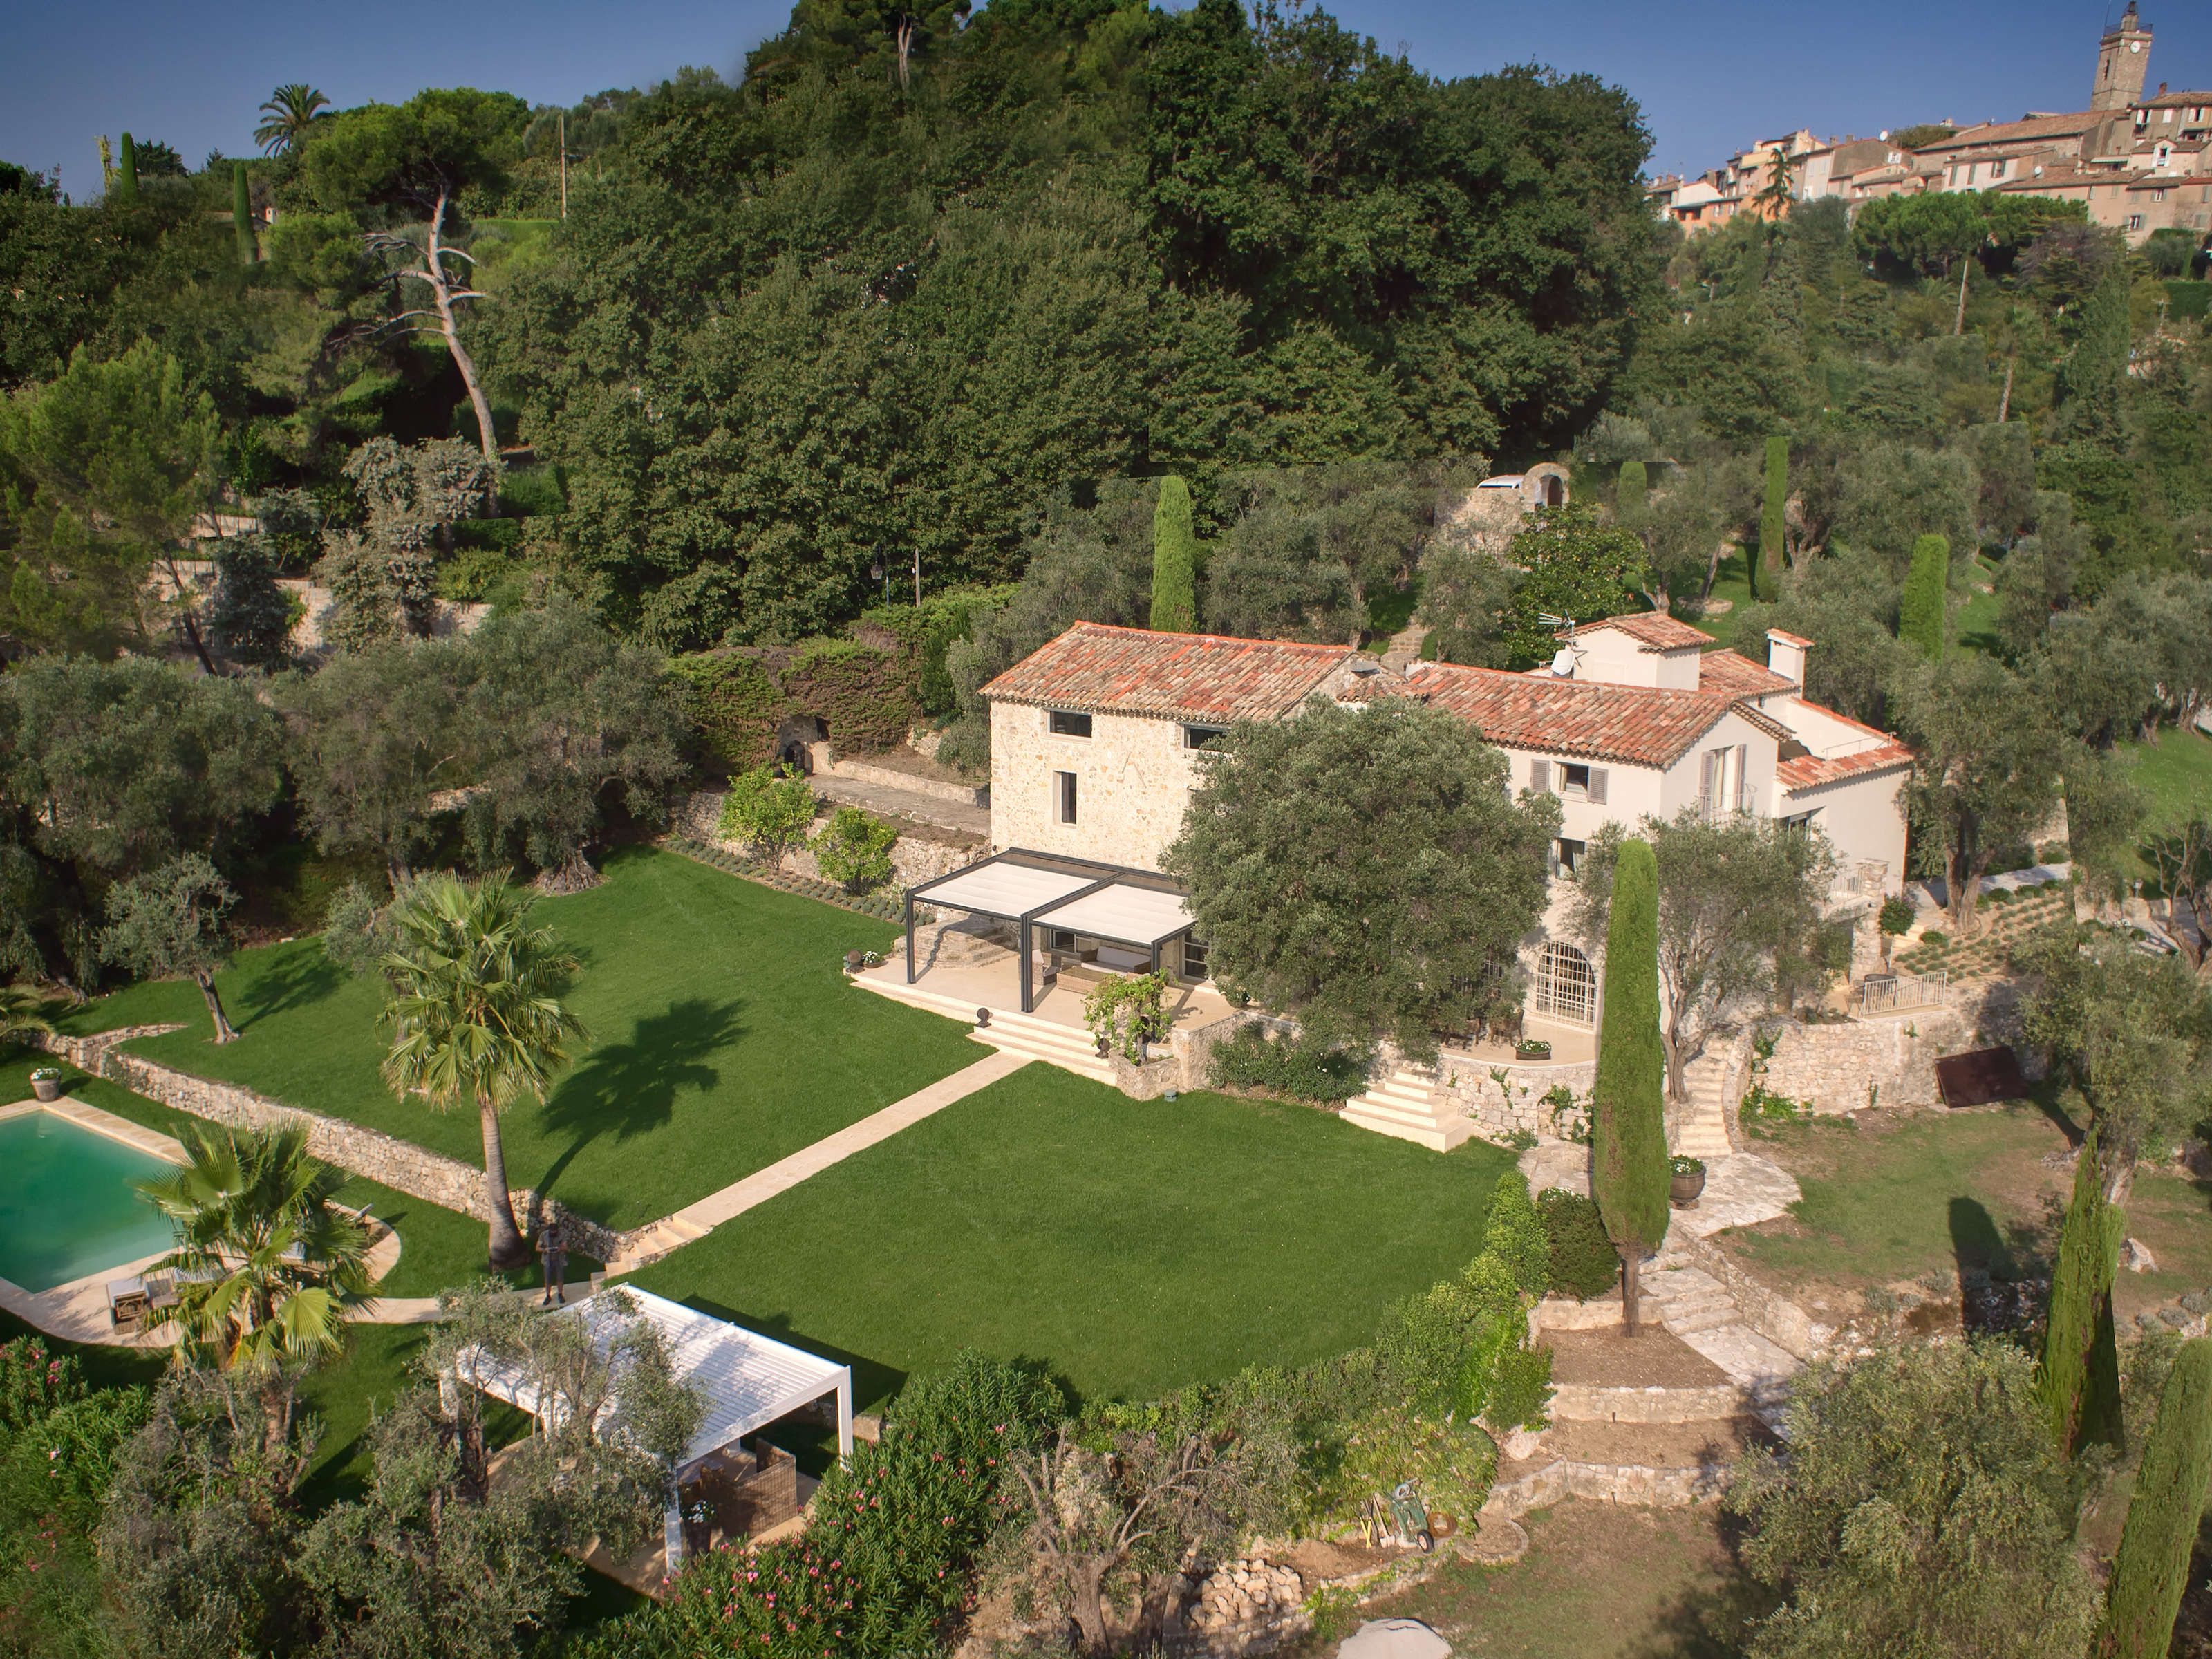 Multi-Family Home for Sale at Superb Provencal Style Property with sea view Mougins, Provence-Alpes-Cote D'Azur 06250 France